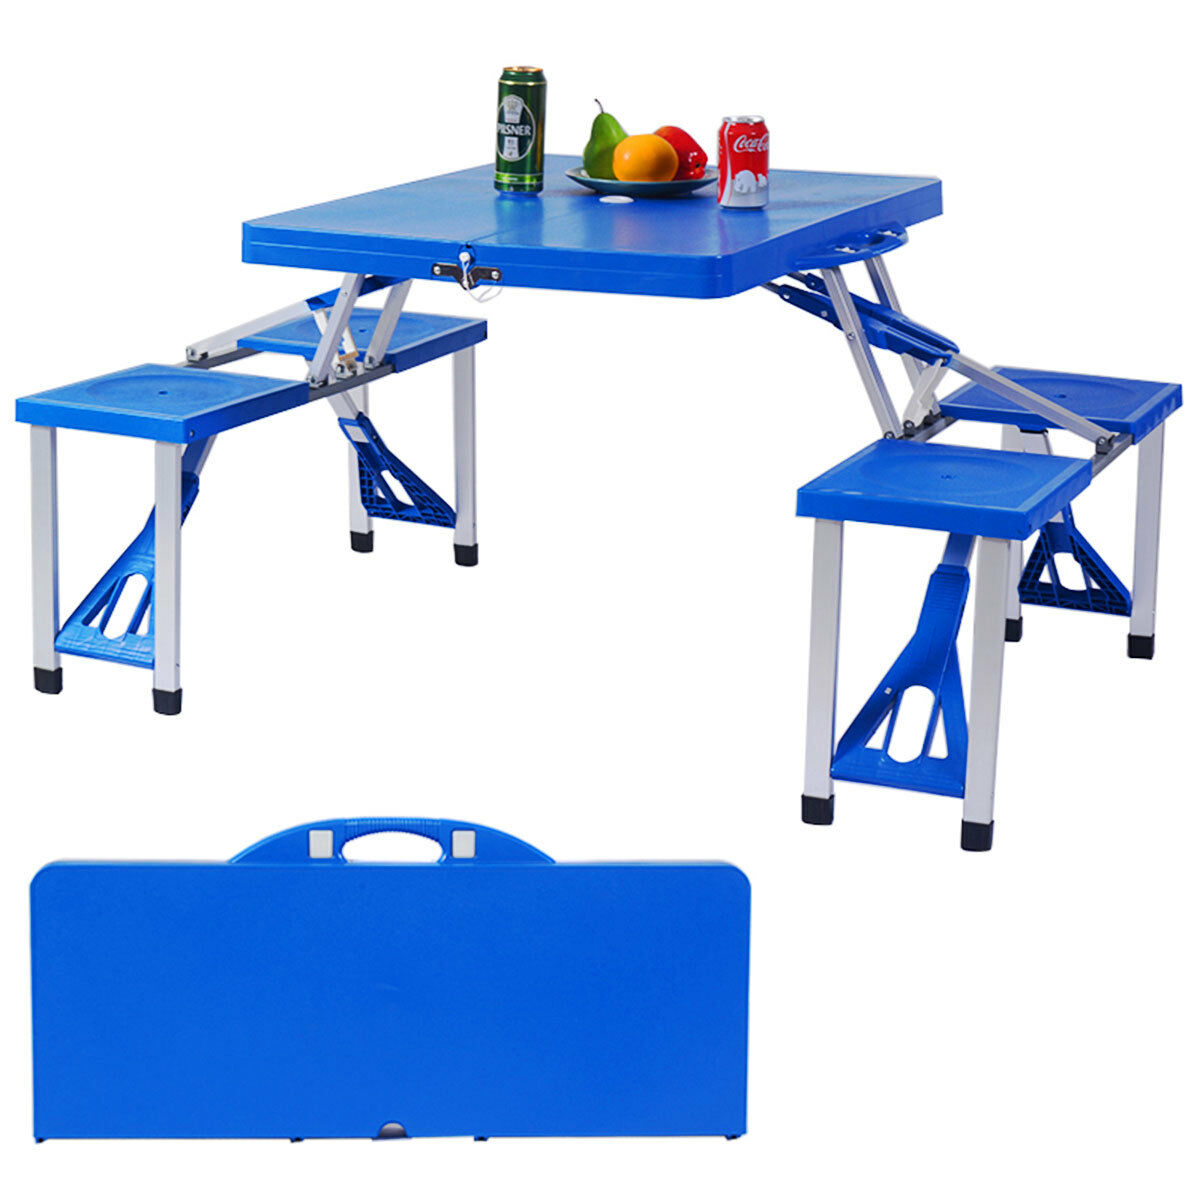 Outdoor Foldable Portable Aluminum Plastic Picnic Table Camping w   Bench 4 Seat  order now